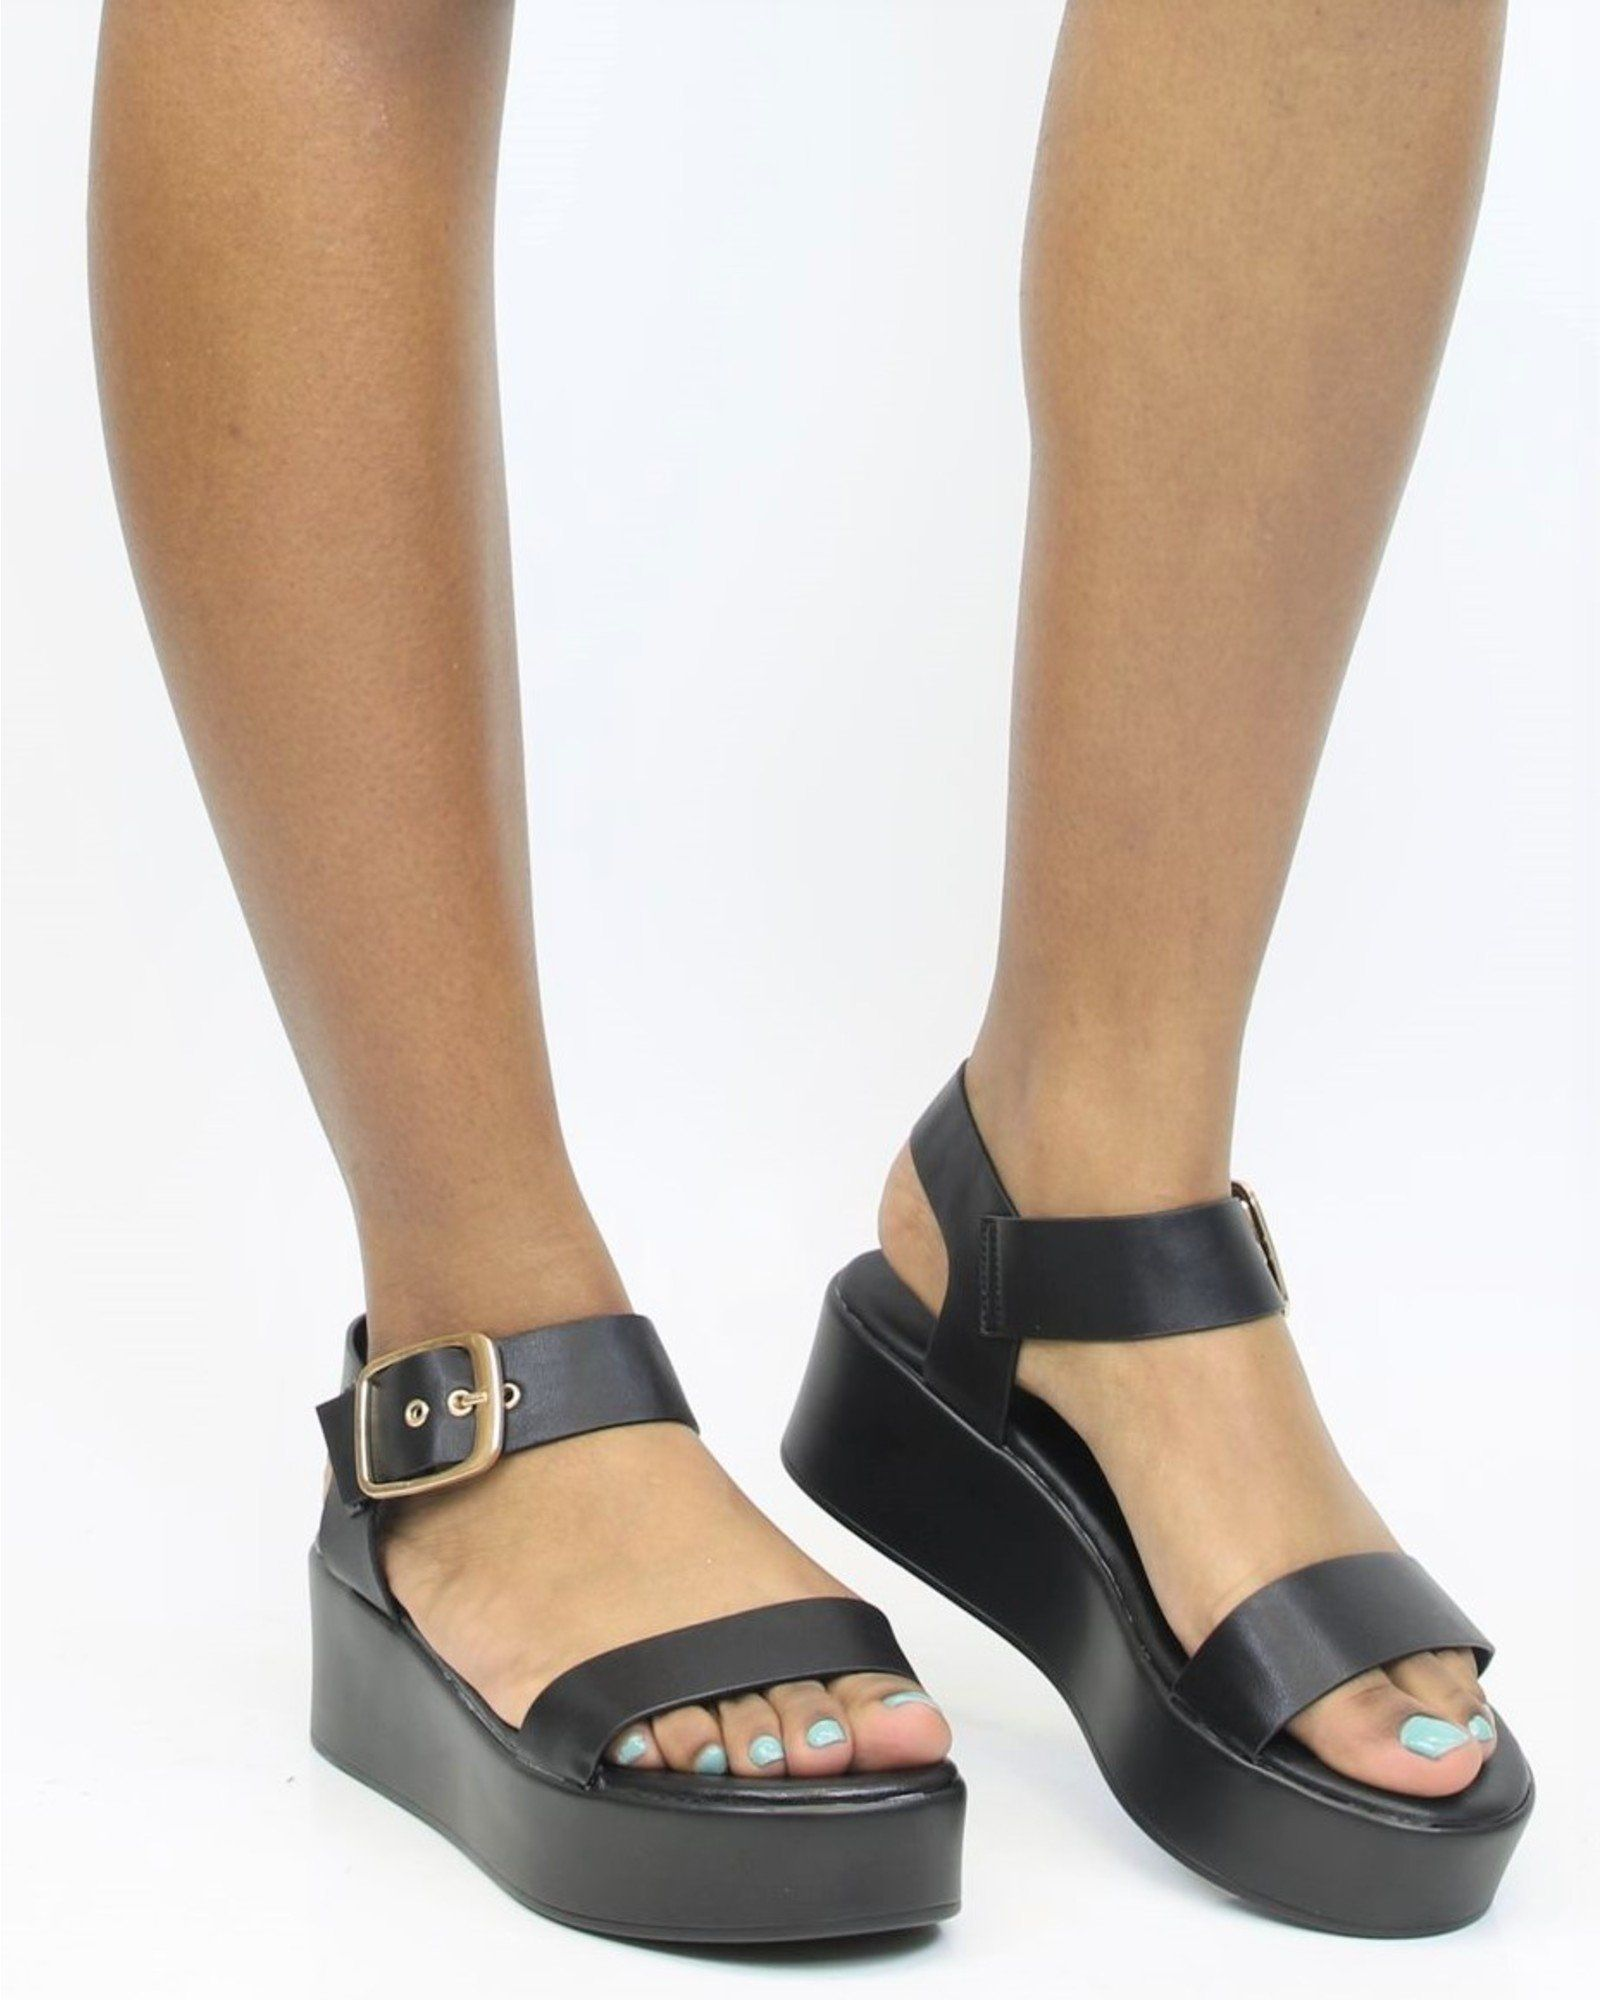 89b510d8163 Available in Black   Gold Rose Gold - Wedge Heel - Open Toe Open Back -  Ankle Strap For An Adjustable Fit - Comfort